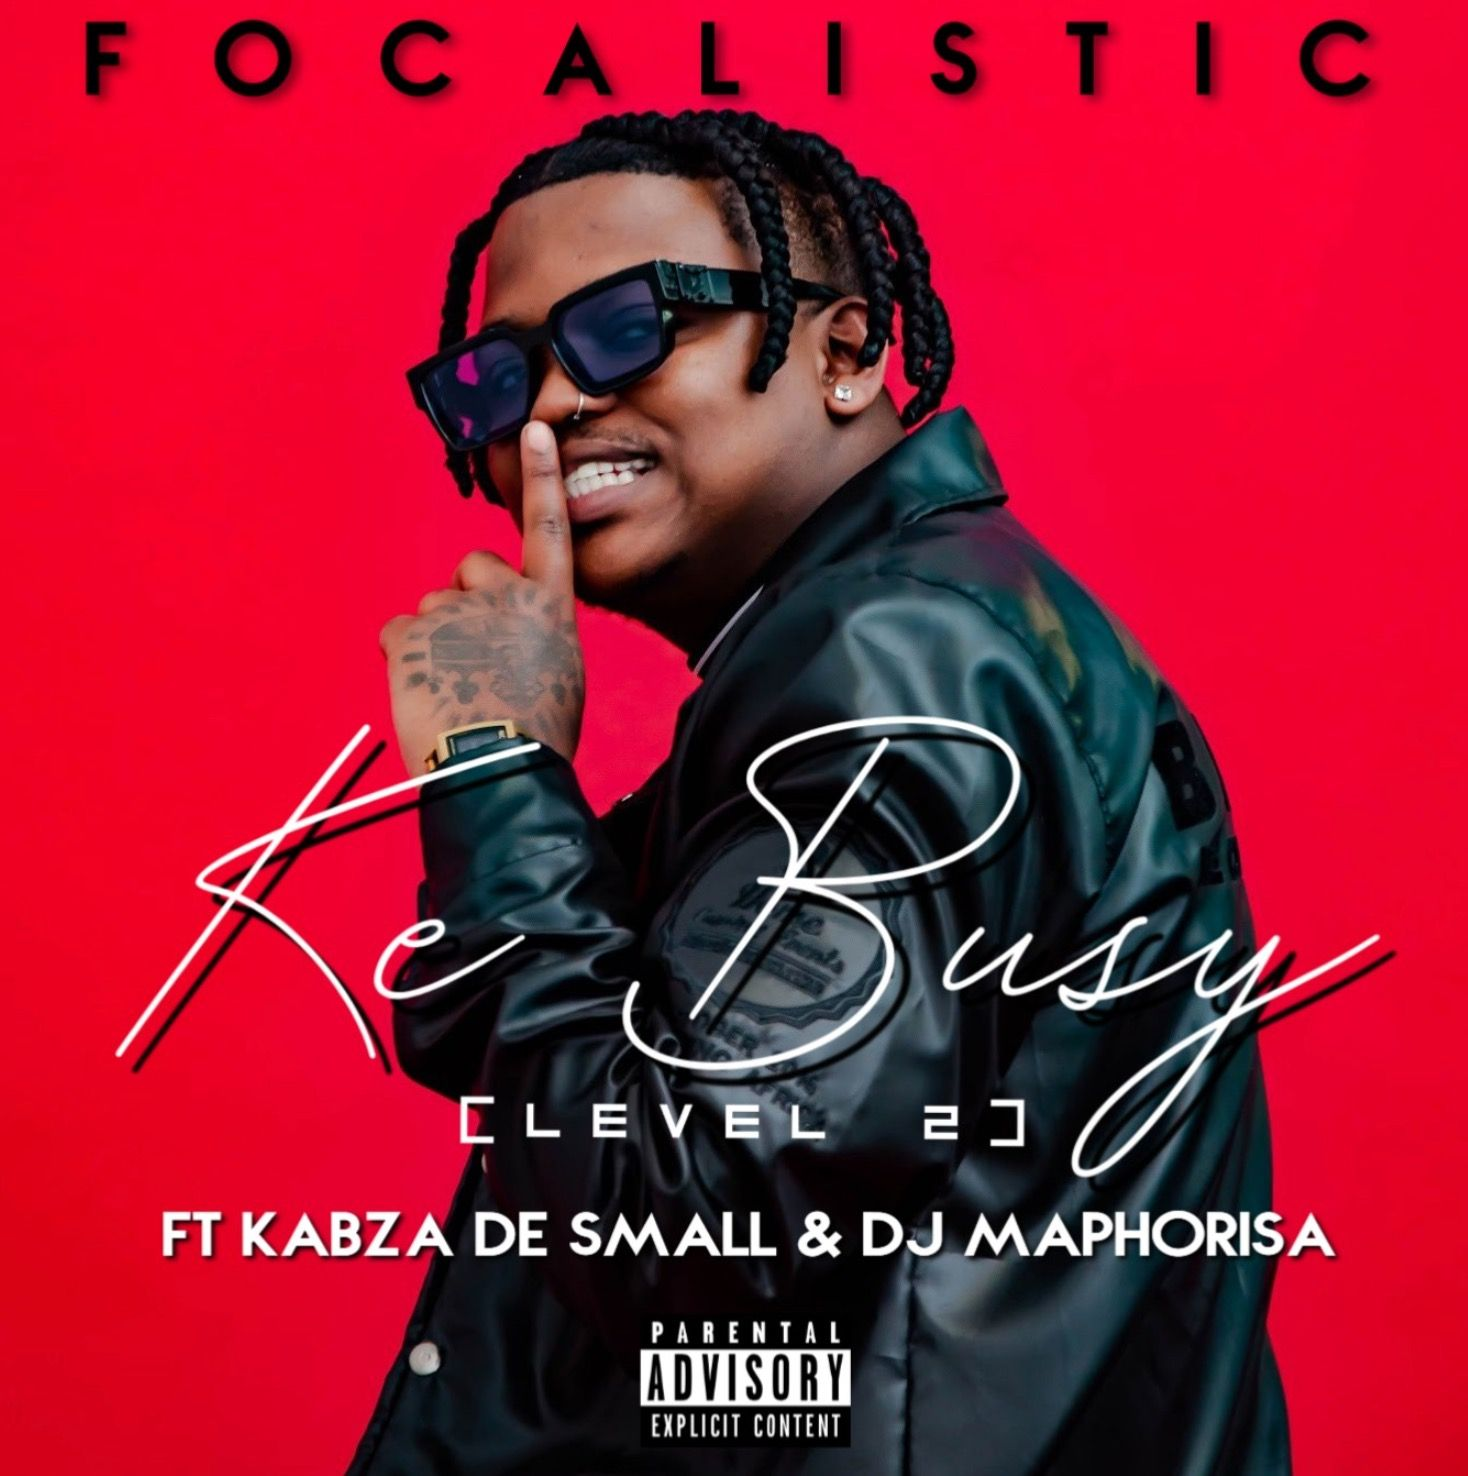 Focalistic Ke Busy Ft Kabza De Small Dj Maphorisa Mp3 Download In 2020 Dj African Music Rapper